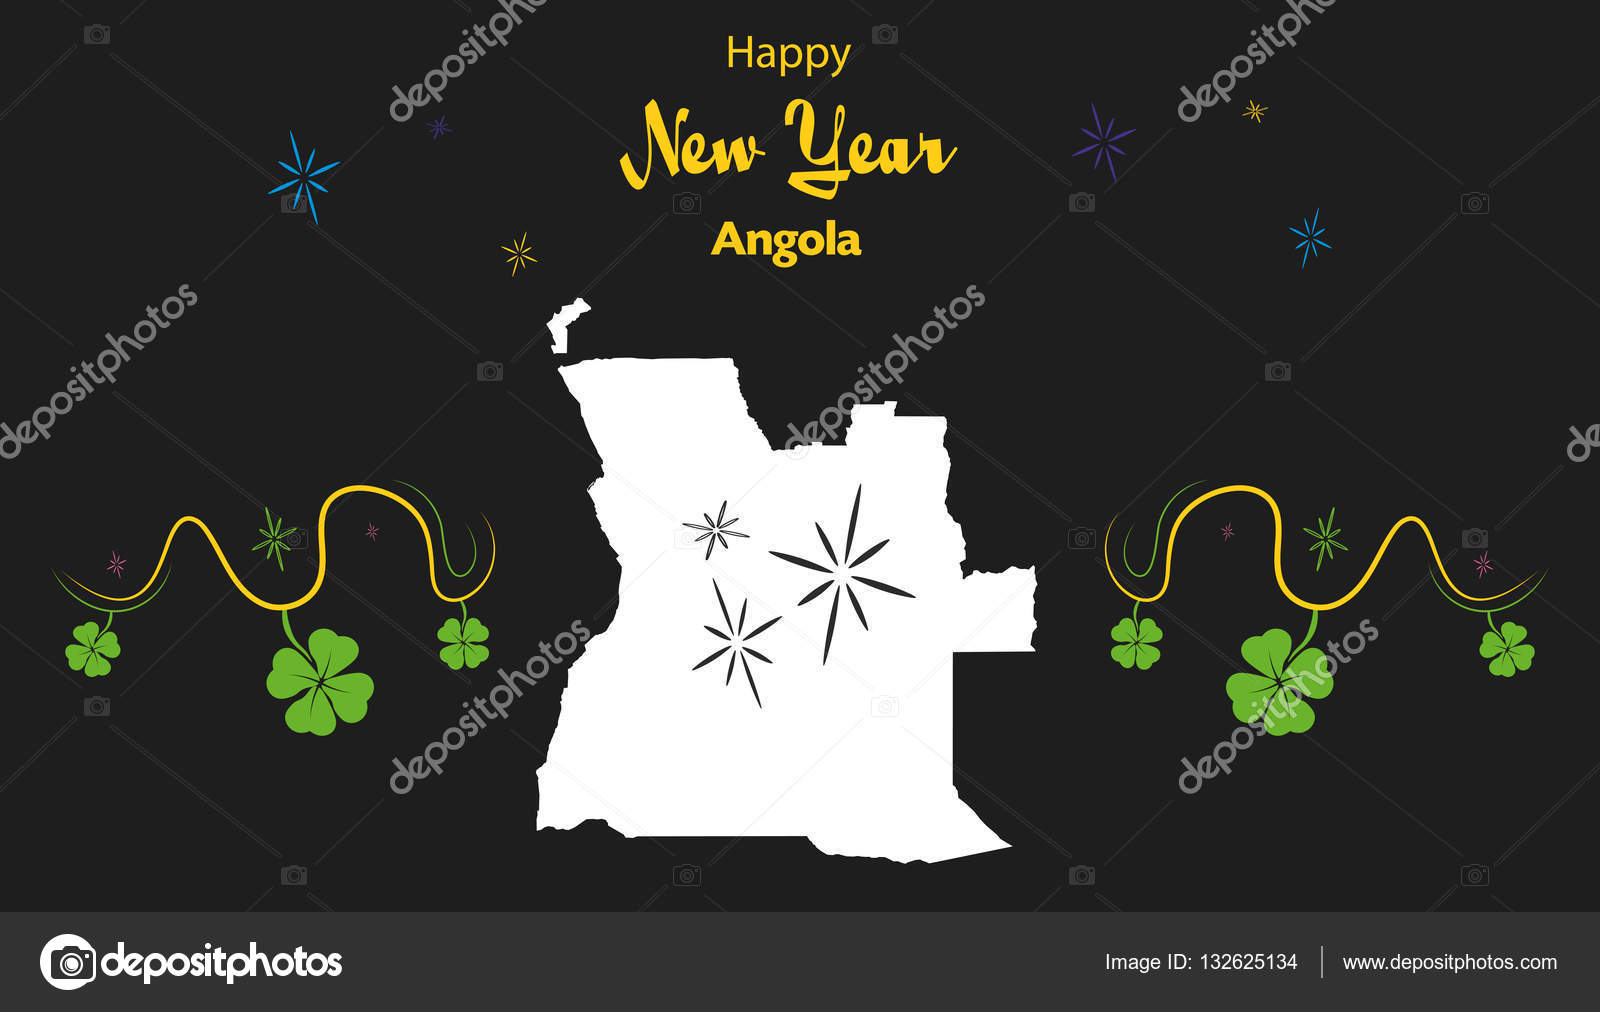 happy new year theme with map of angola stock vector